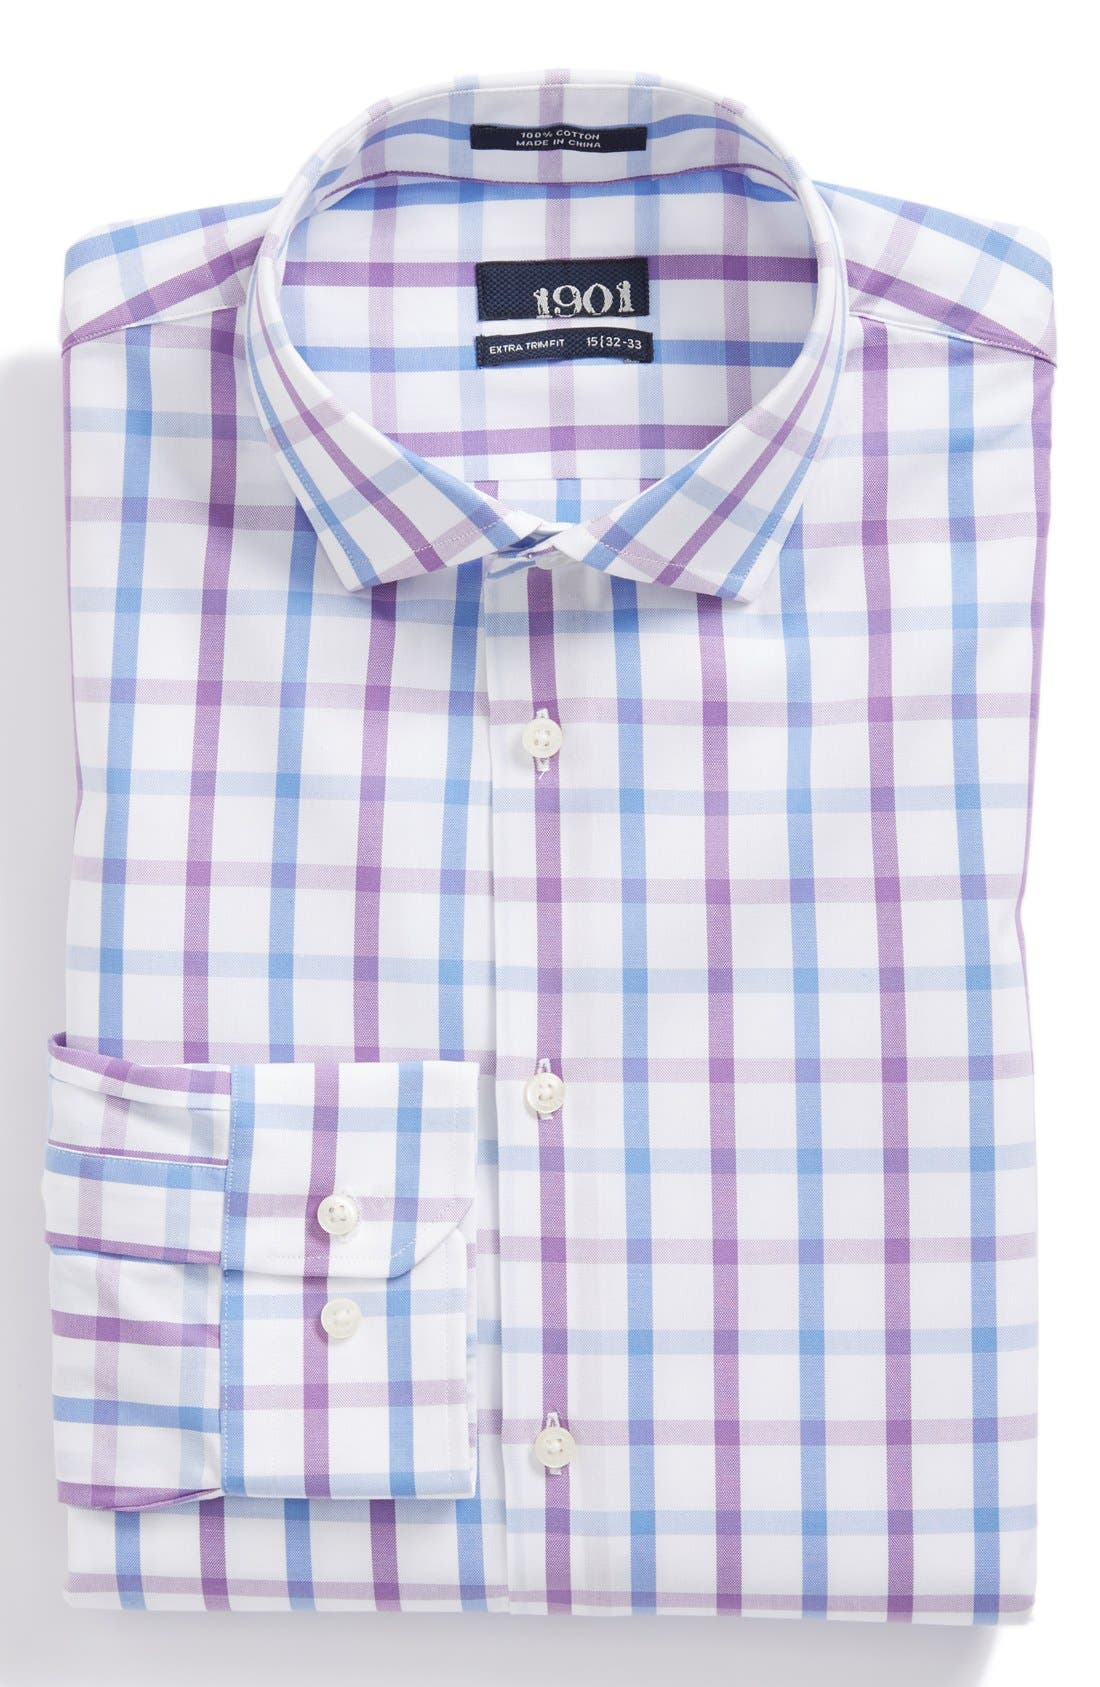 Alternate Image 1 Selected - 1901 Extra Trim Fit Dress Shirt